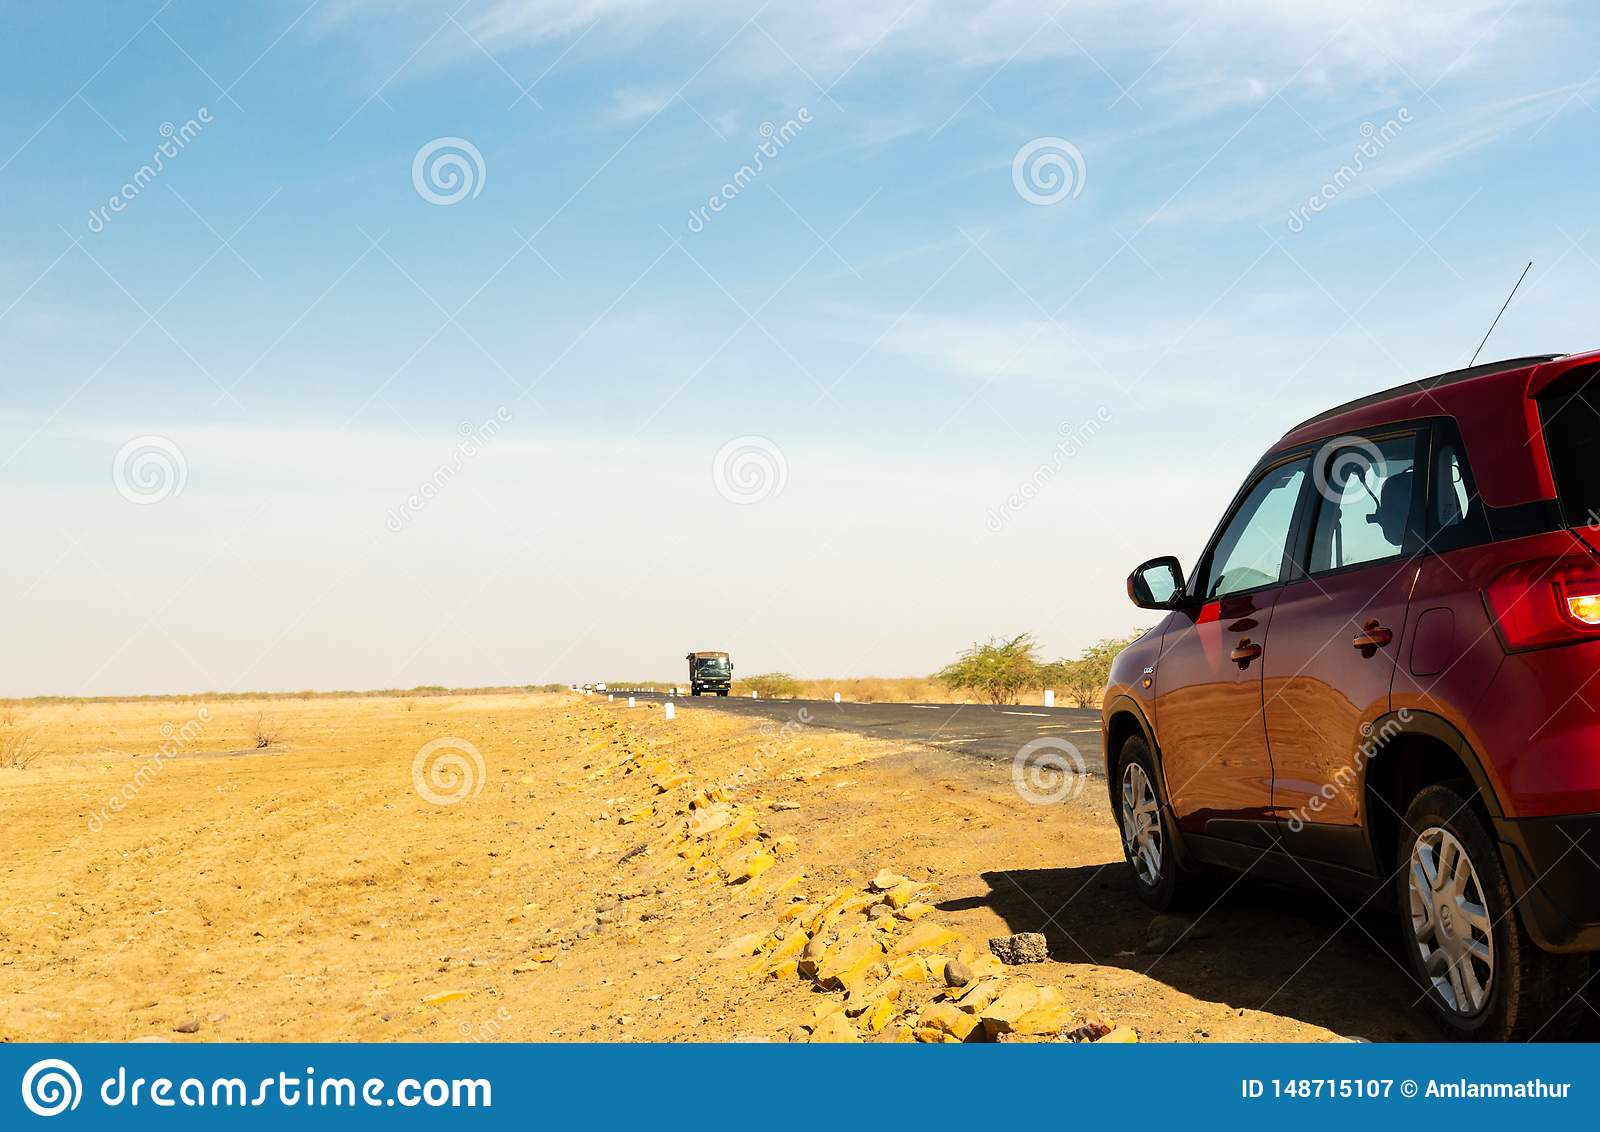 Shot Showing Red Car On A Long Stretch Of Empty Highway In